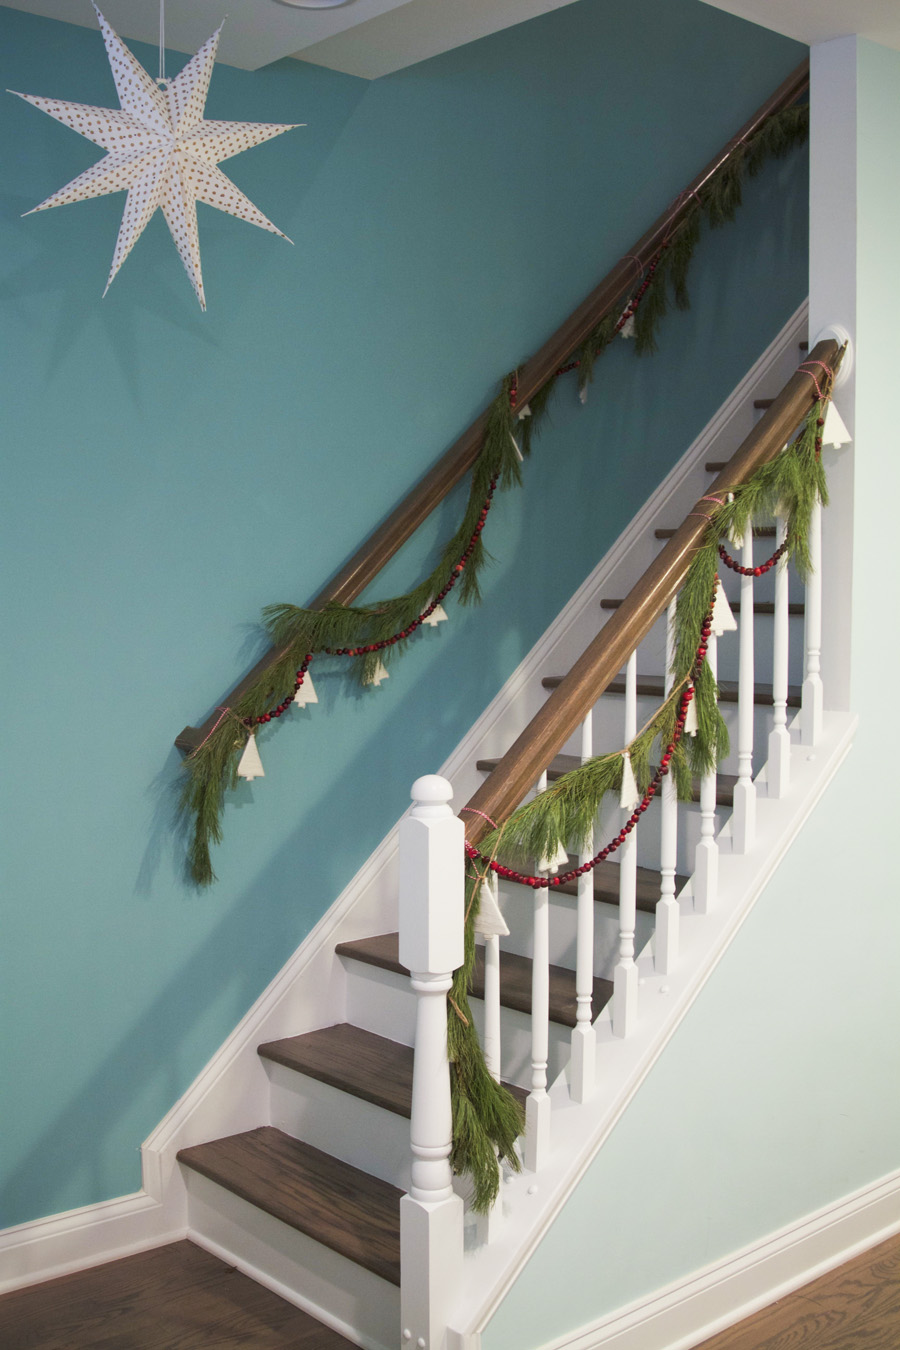 Our Christmassy stairwell